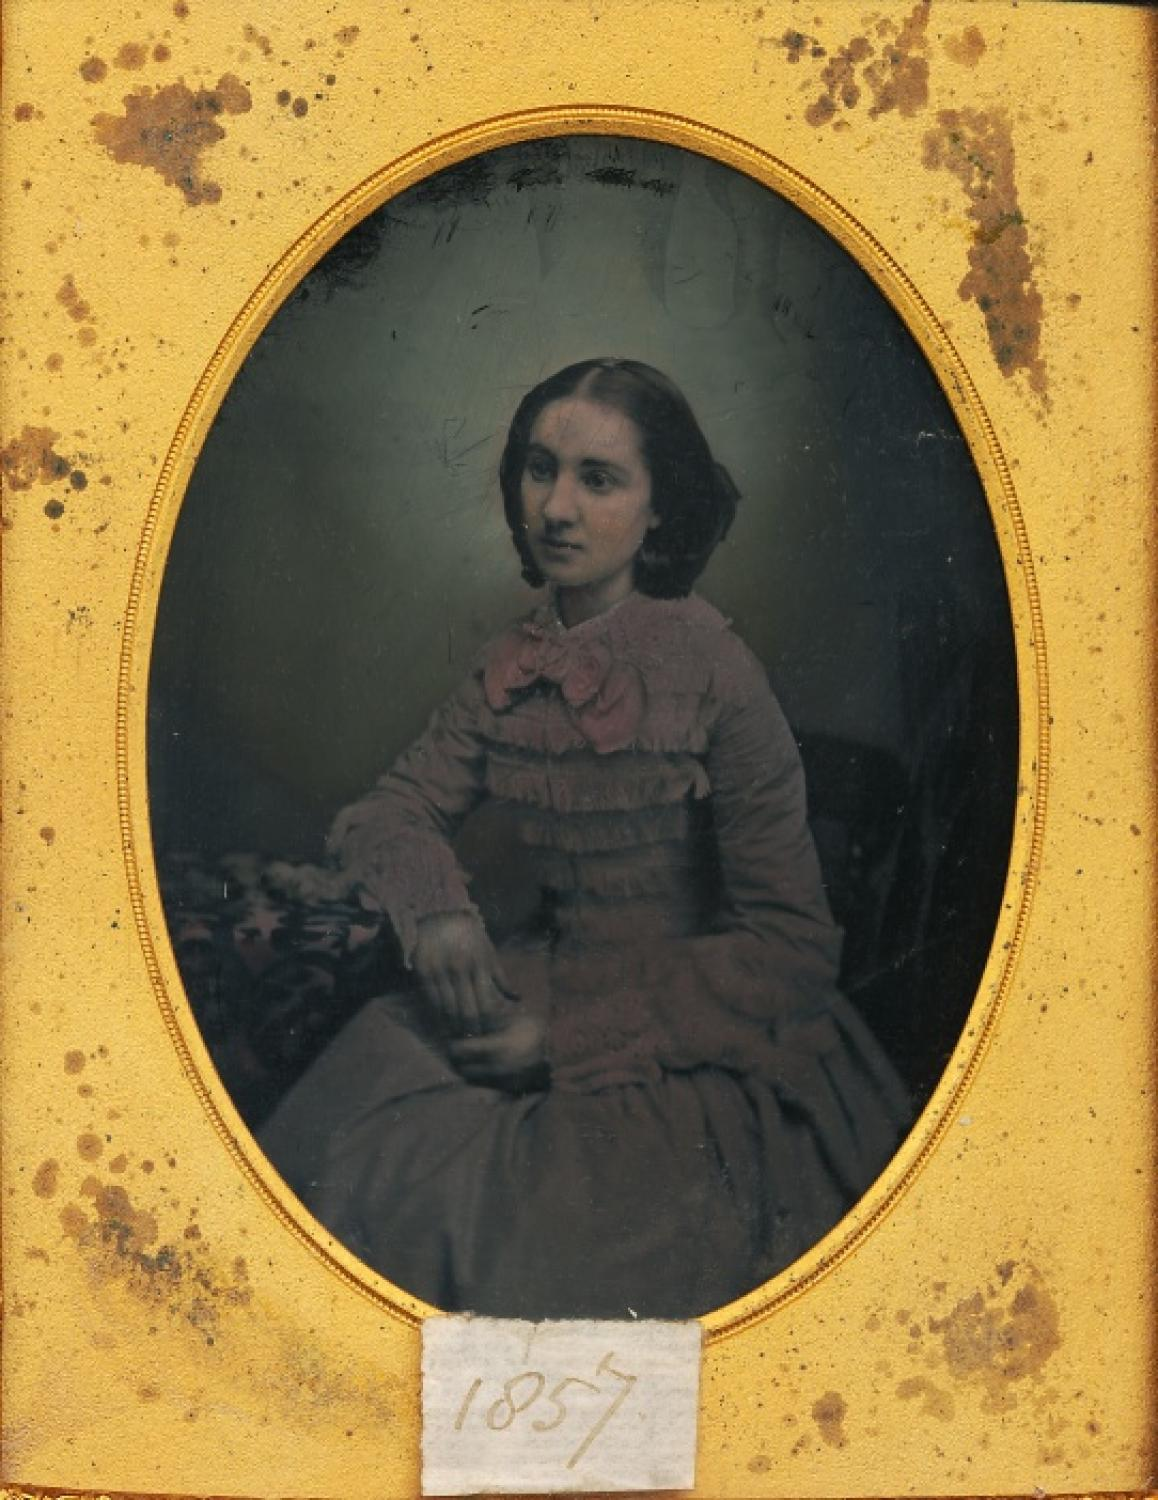 1/2 Plate Ambrotype of A Young Lady